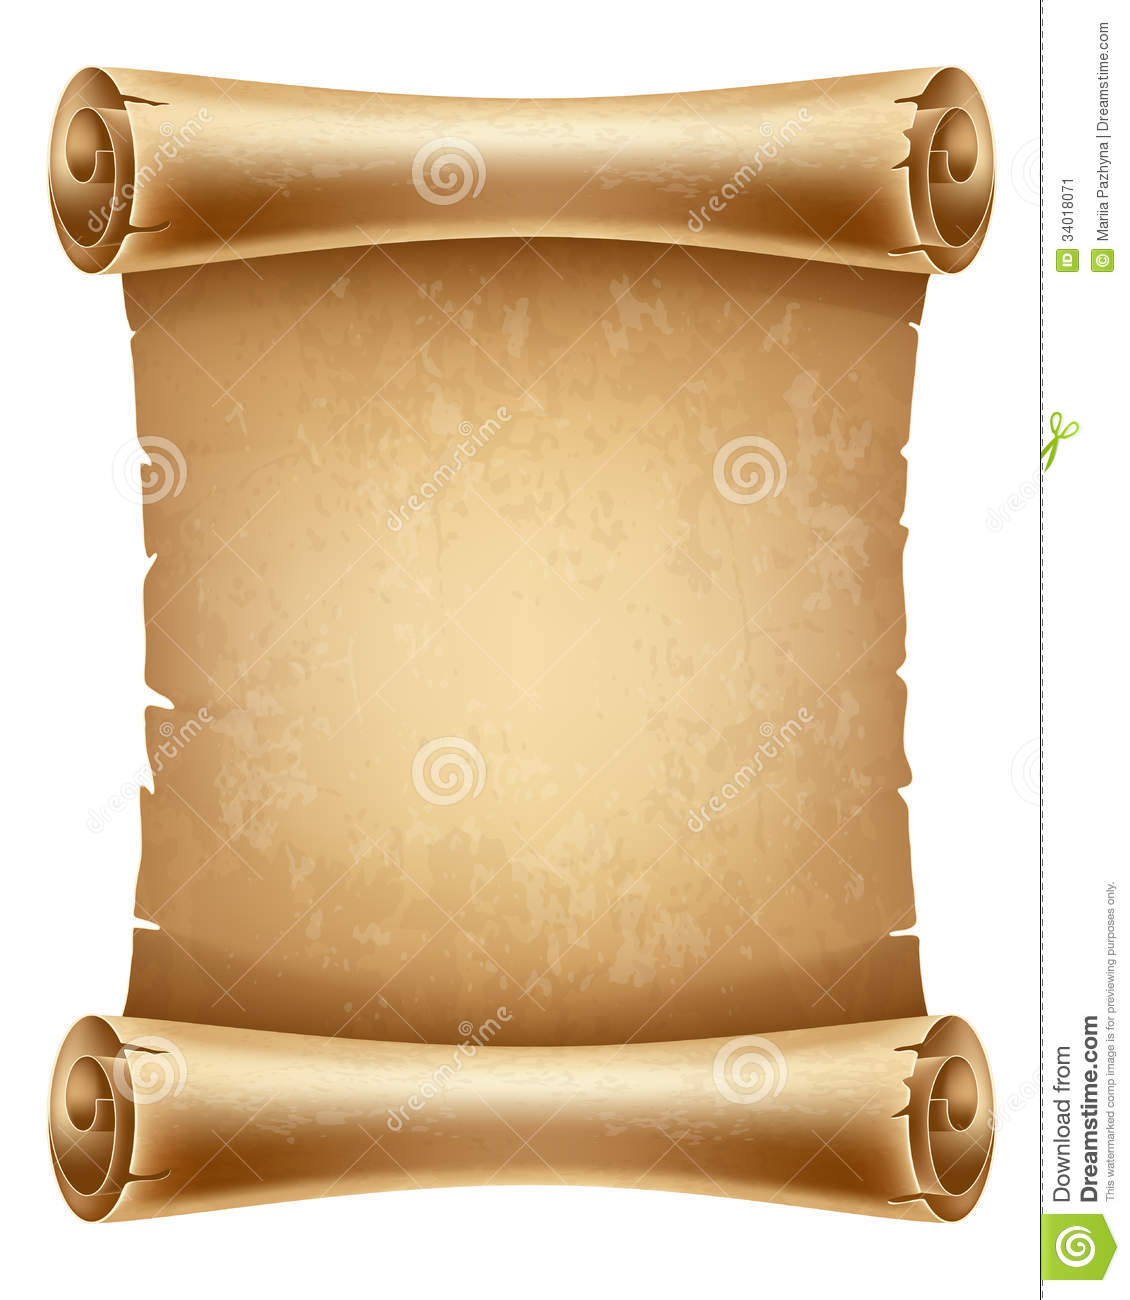 Scroll paper stock vector. Illustration of brown, blank ...